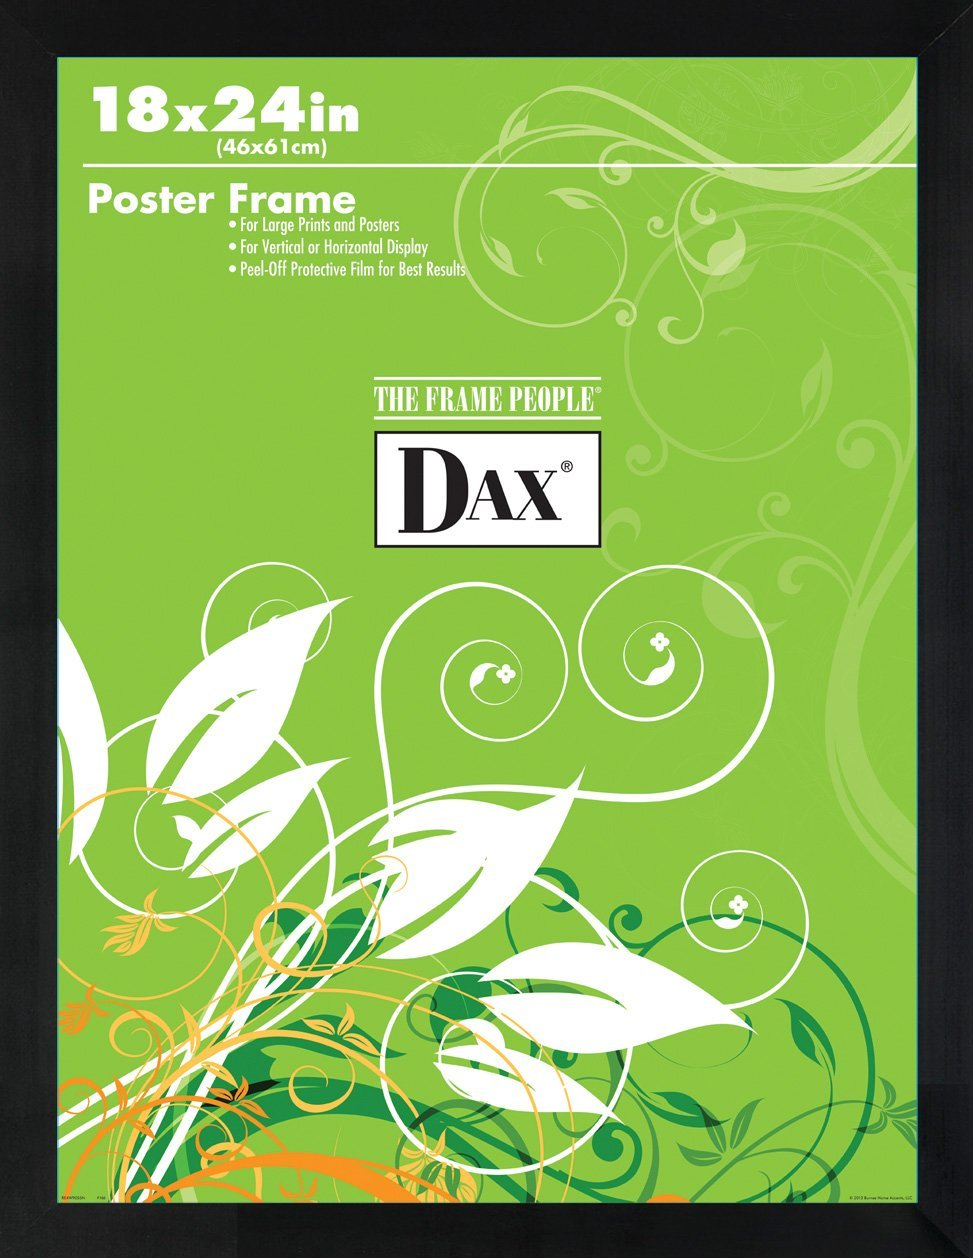 Amazon.com: DAX Flat Face Wood Poster Frame, Clear Plastic Window ...